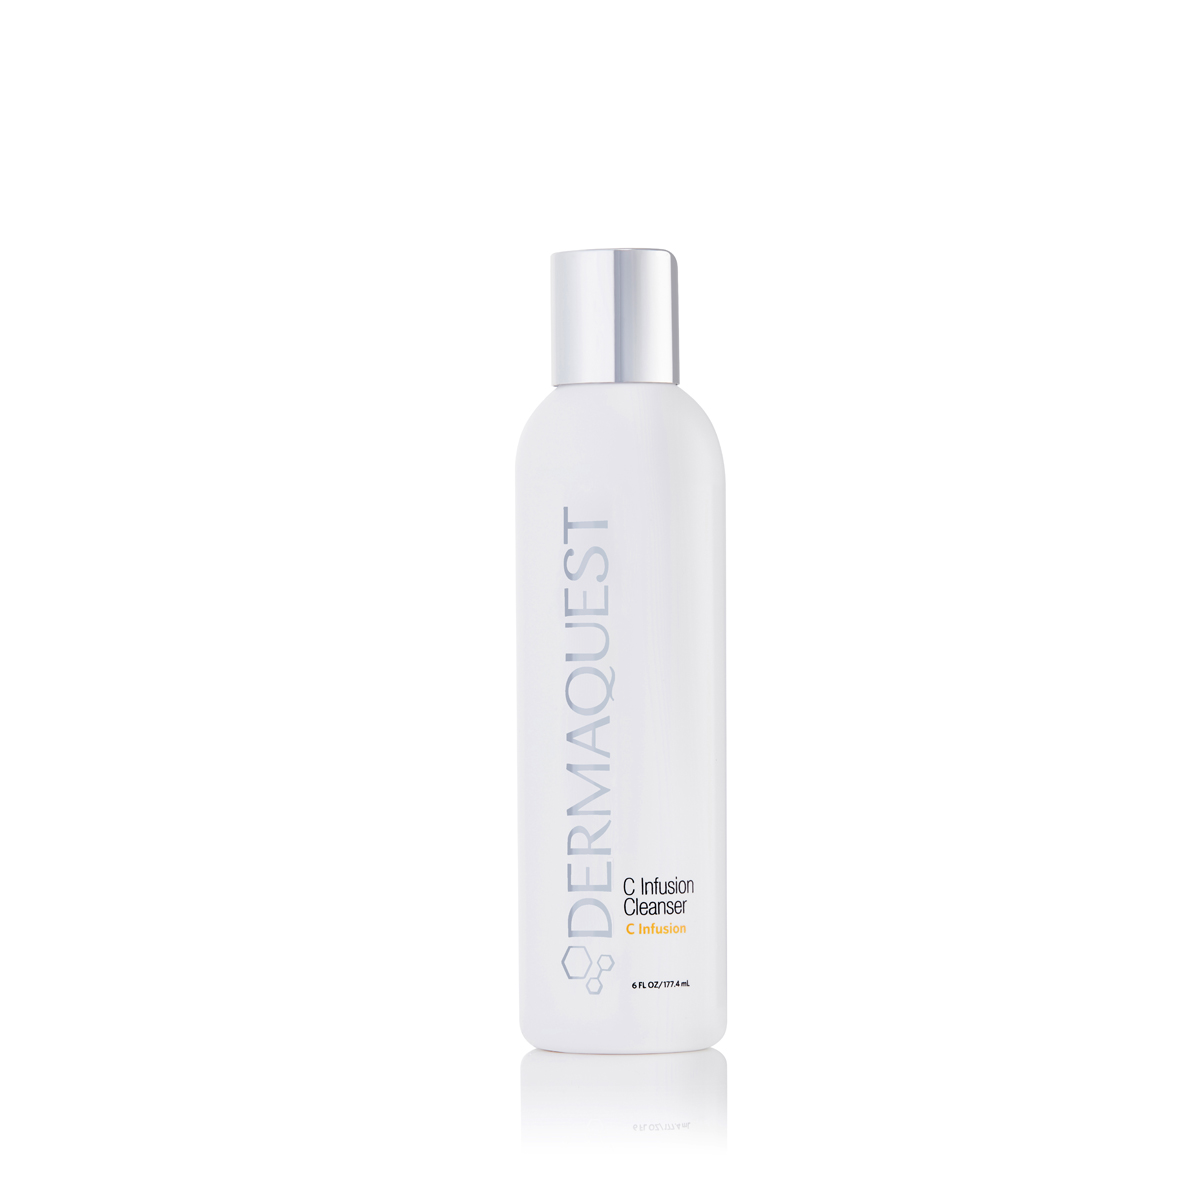 C Infusion Cleanser – C Infusion